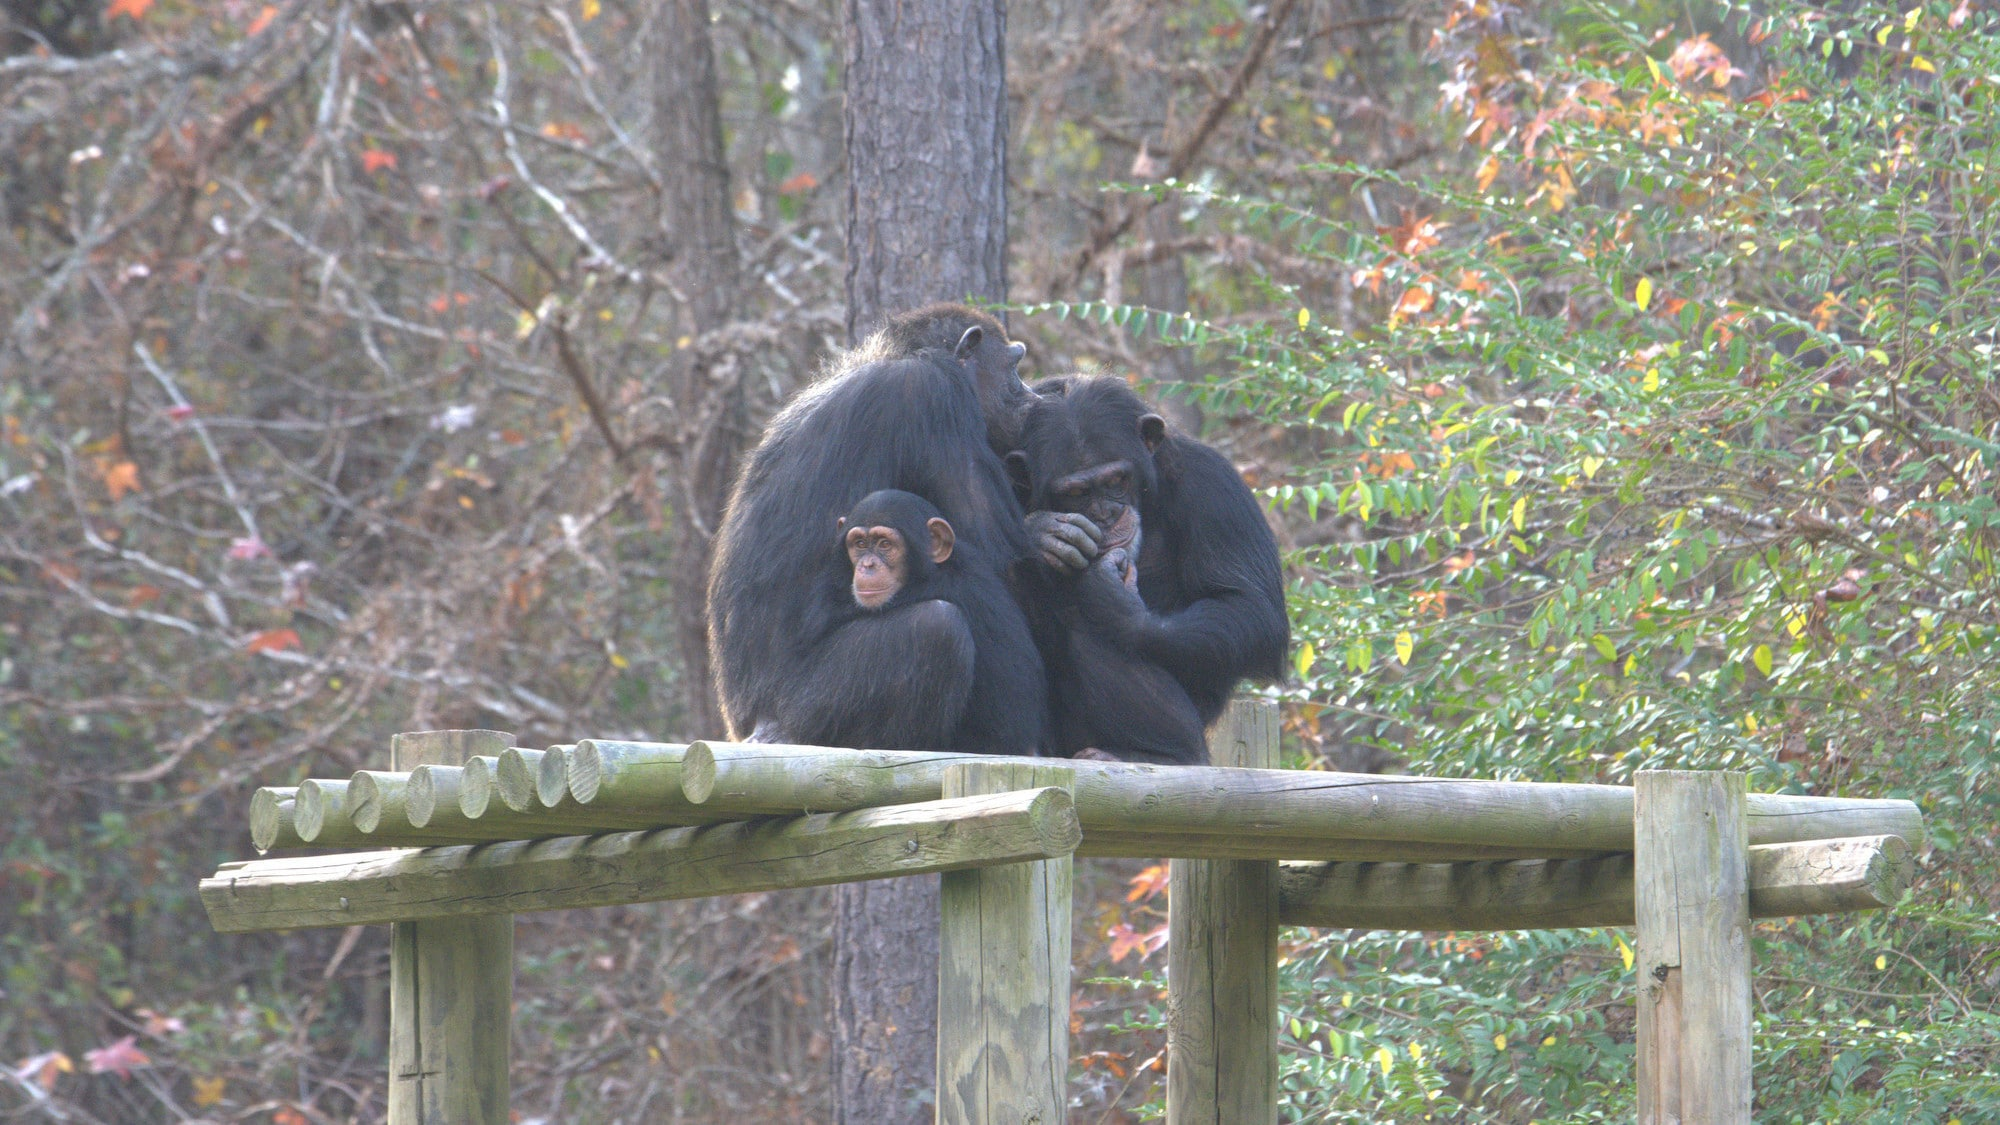 Keithville, Louisiana - Baby Carlee with her Mum Passion, and older sister Arden on a platform in their forest habitat at Chimp Haven. Passion and Arden are grooming, an important part of Chimp social behaviour. They are in 'Flora's Group'. (National Geog